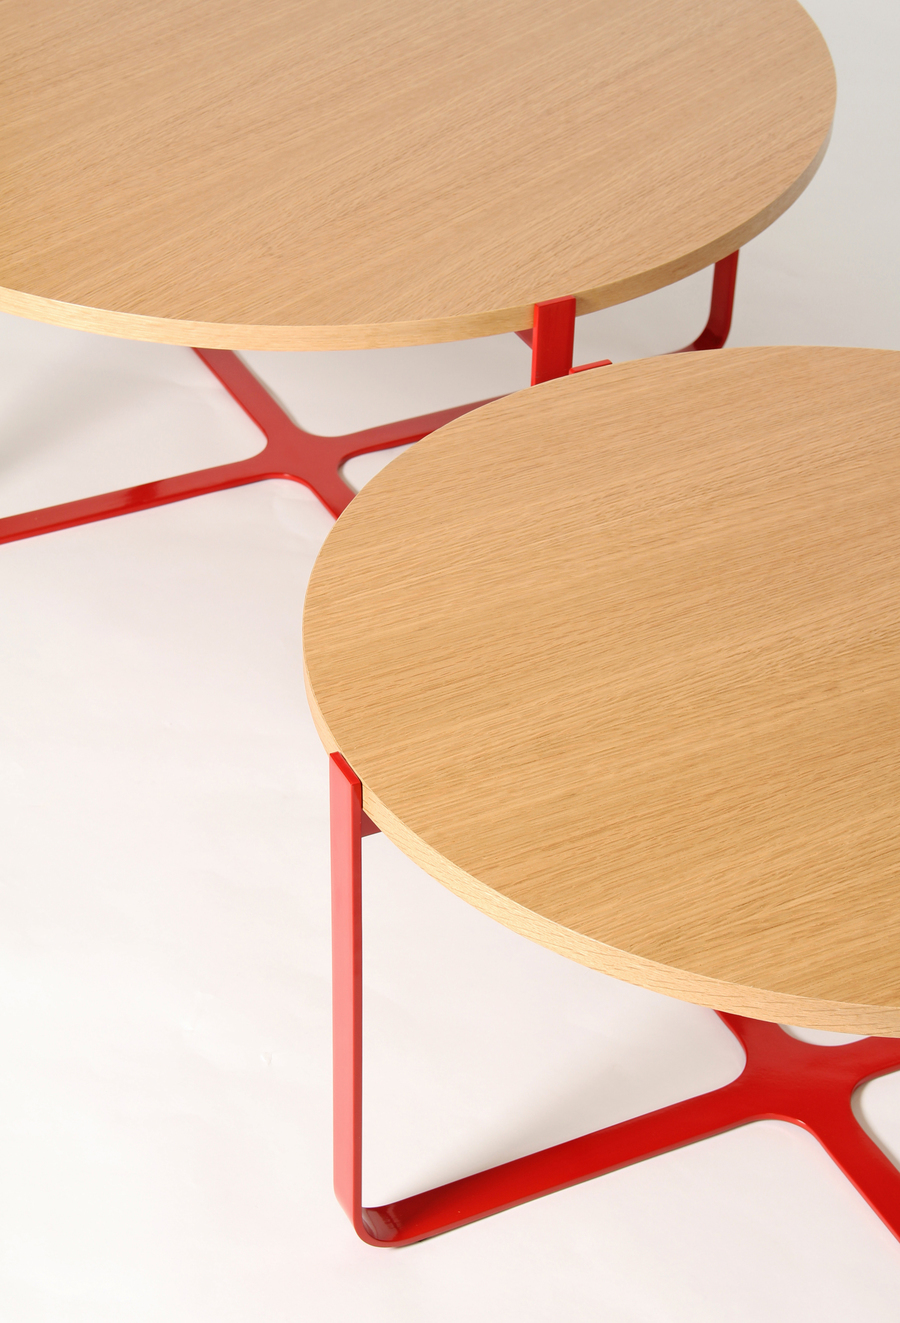 A close-up view of two red, round Trace Coffee Tables with wooden tops.